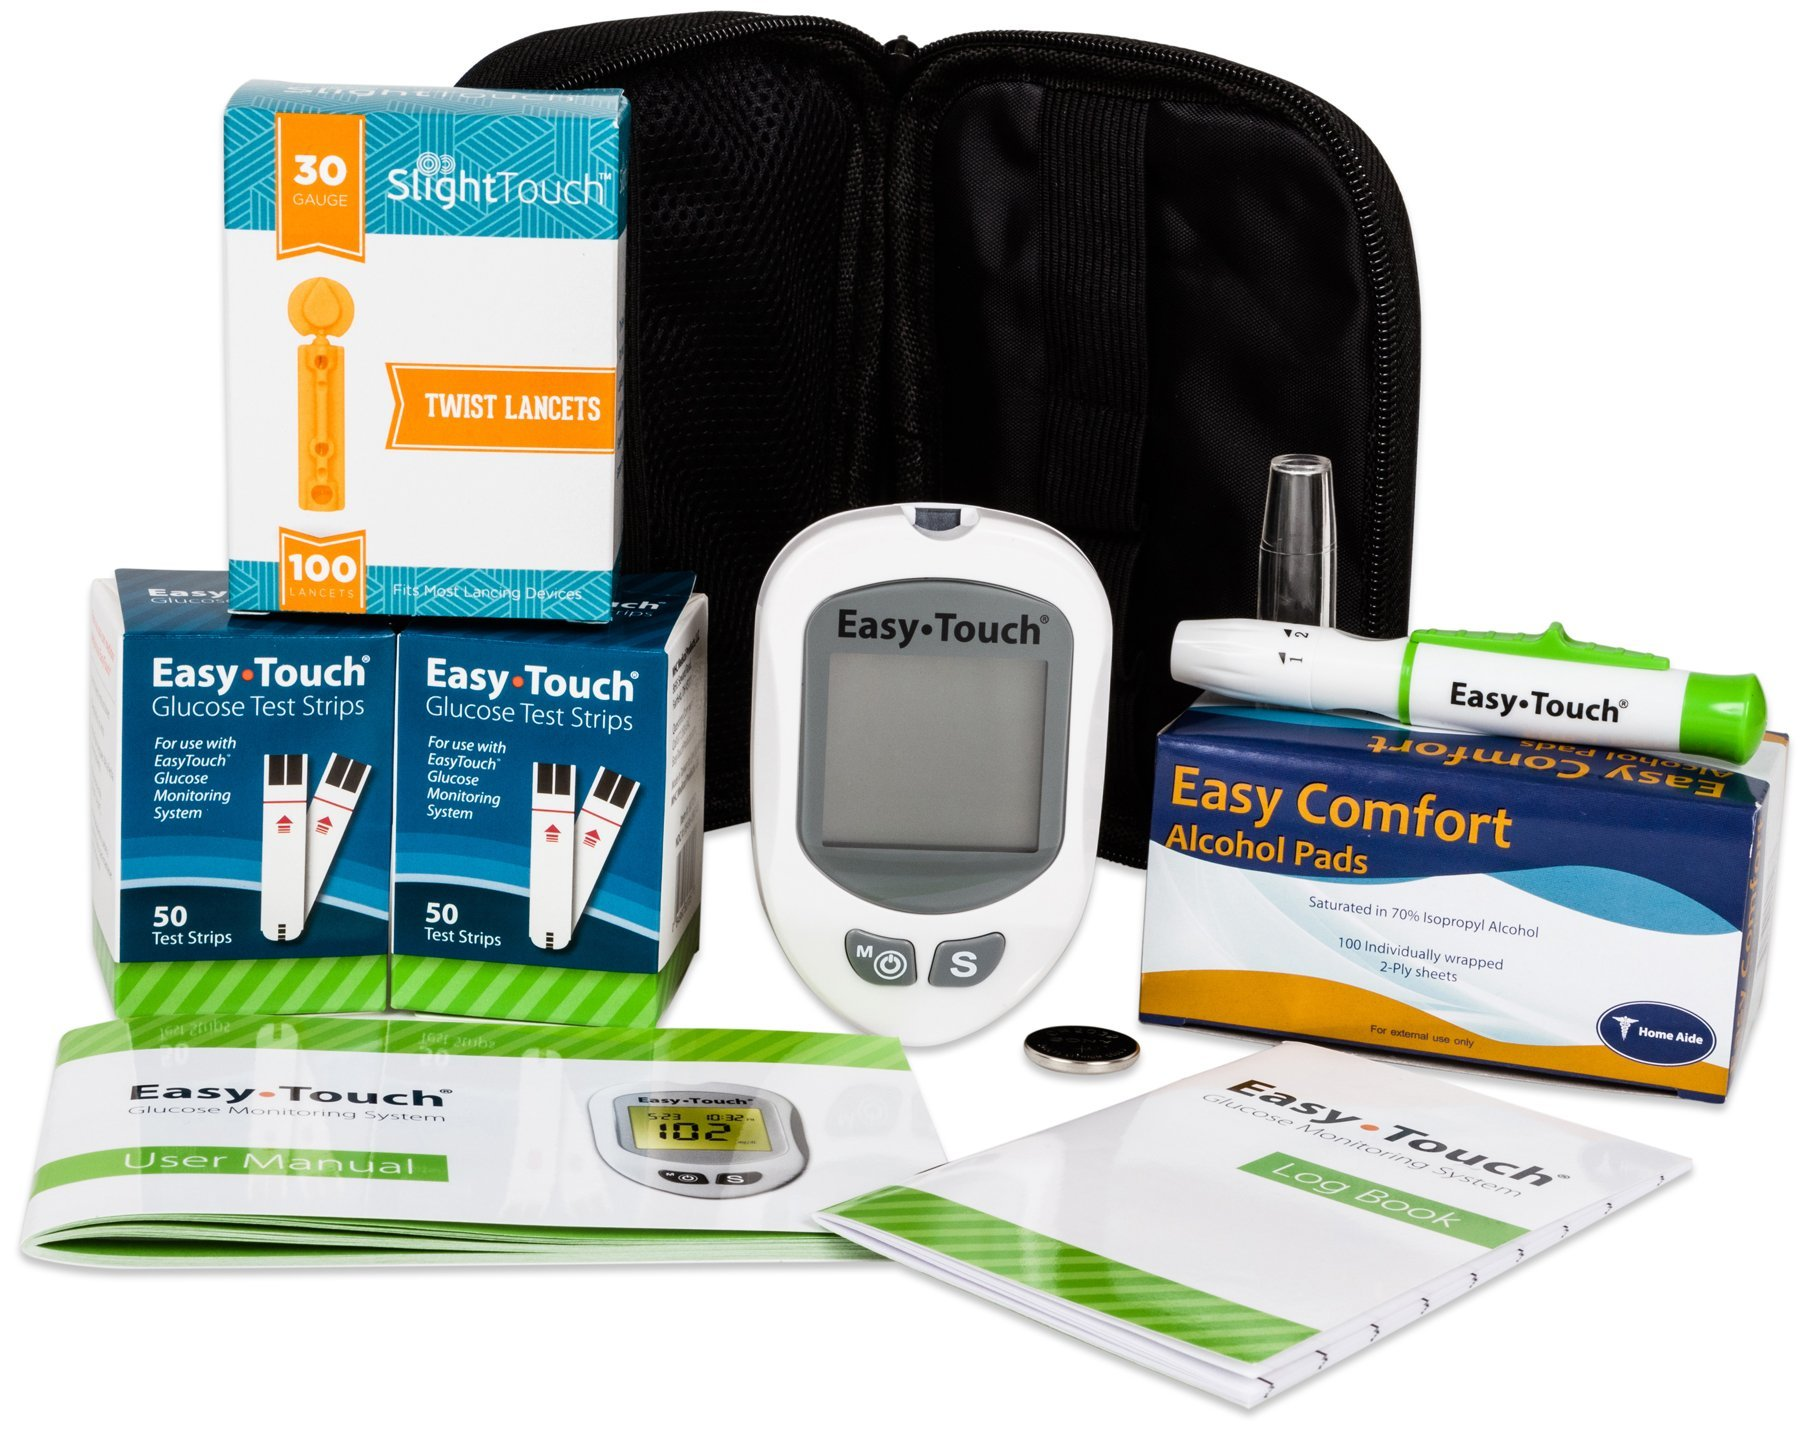 Easy Touch Diabetes Testing Kit - Easy Touch Meter, 100 Easy Touch Blood Glucose Test Strips, 100 Slight Touch Lancets 30g, Lancing Device and 100 Slight Touch Alcohol Pads by Slight Touch